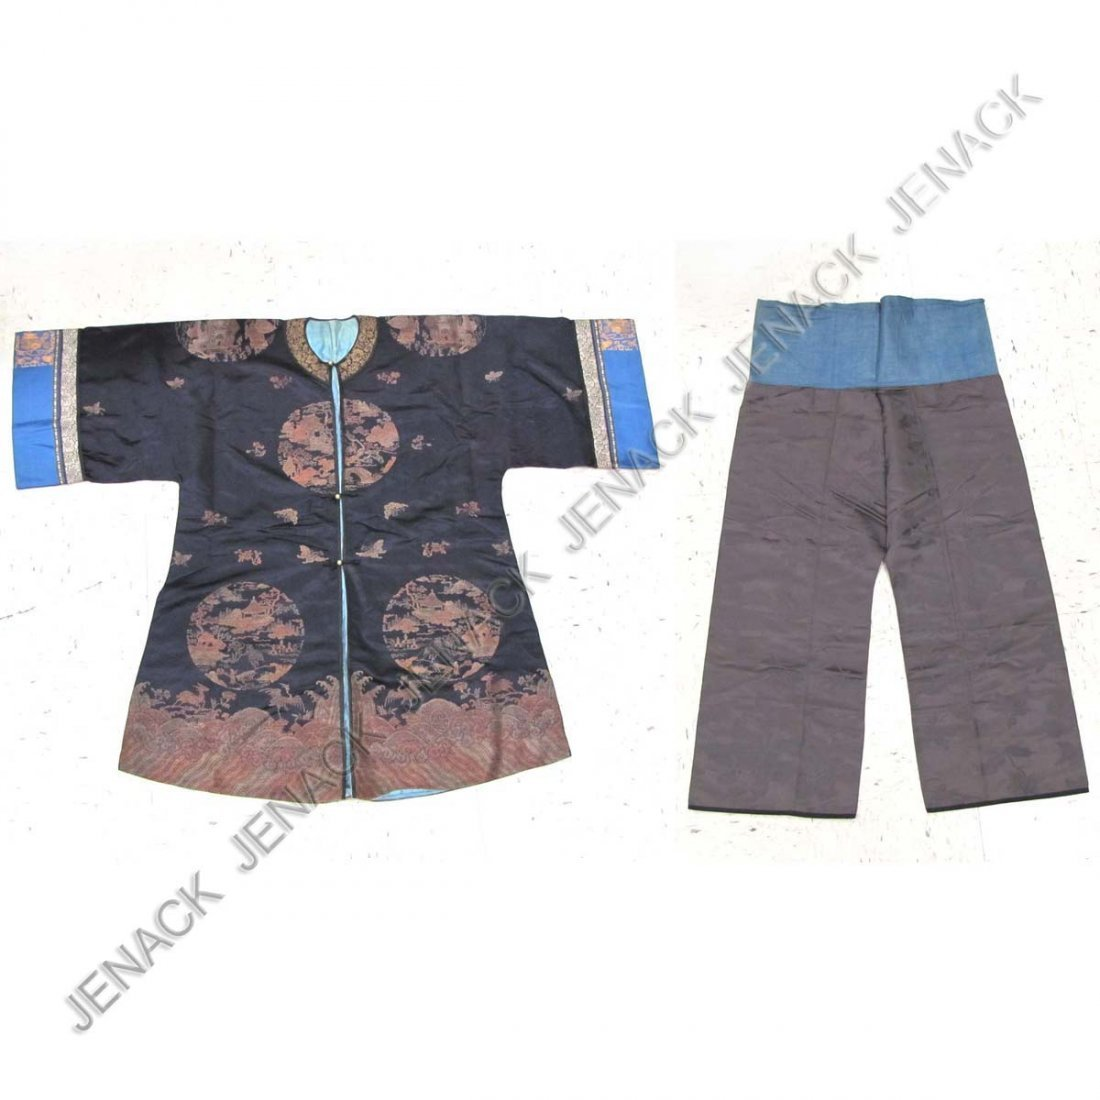 11: VINTAGE CHINESE EMBROIDERED SILK JACKET AND PANTS